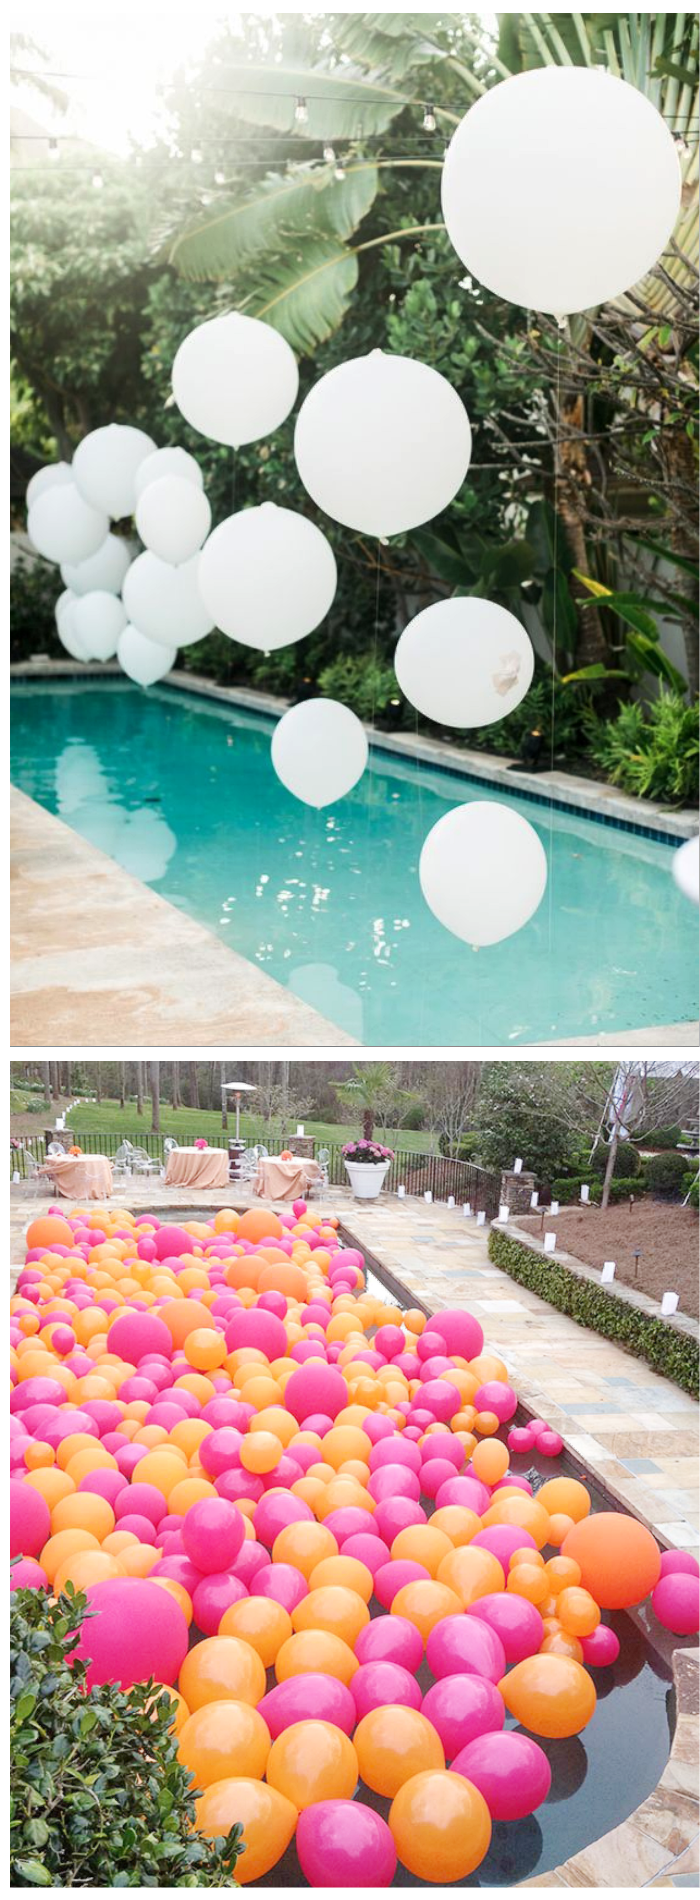 summer party pool balloons decorations